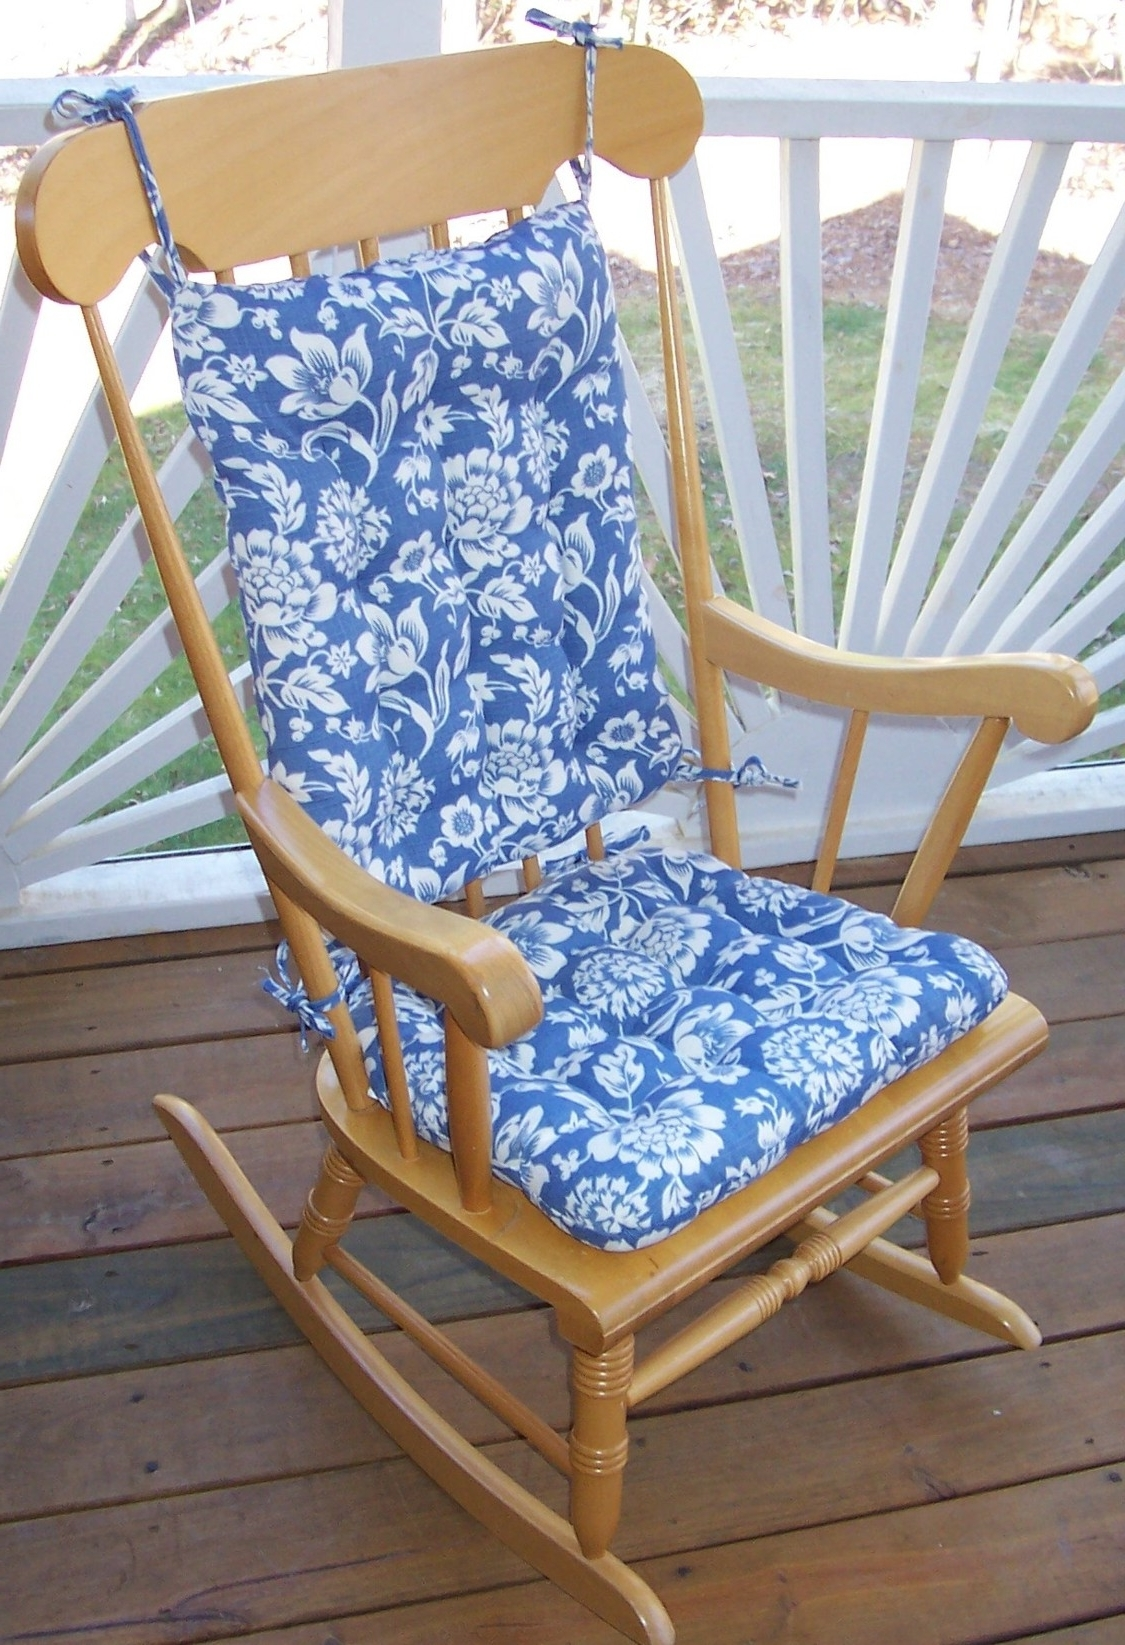 Widely Used Designer Outdoor Furniture Auckland – Kevinjohnsonformayor For Yellow Outdoor Rocking Chairs (View 13 of 15)